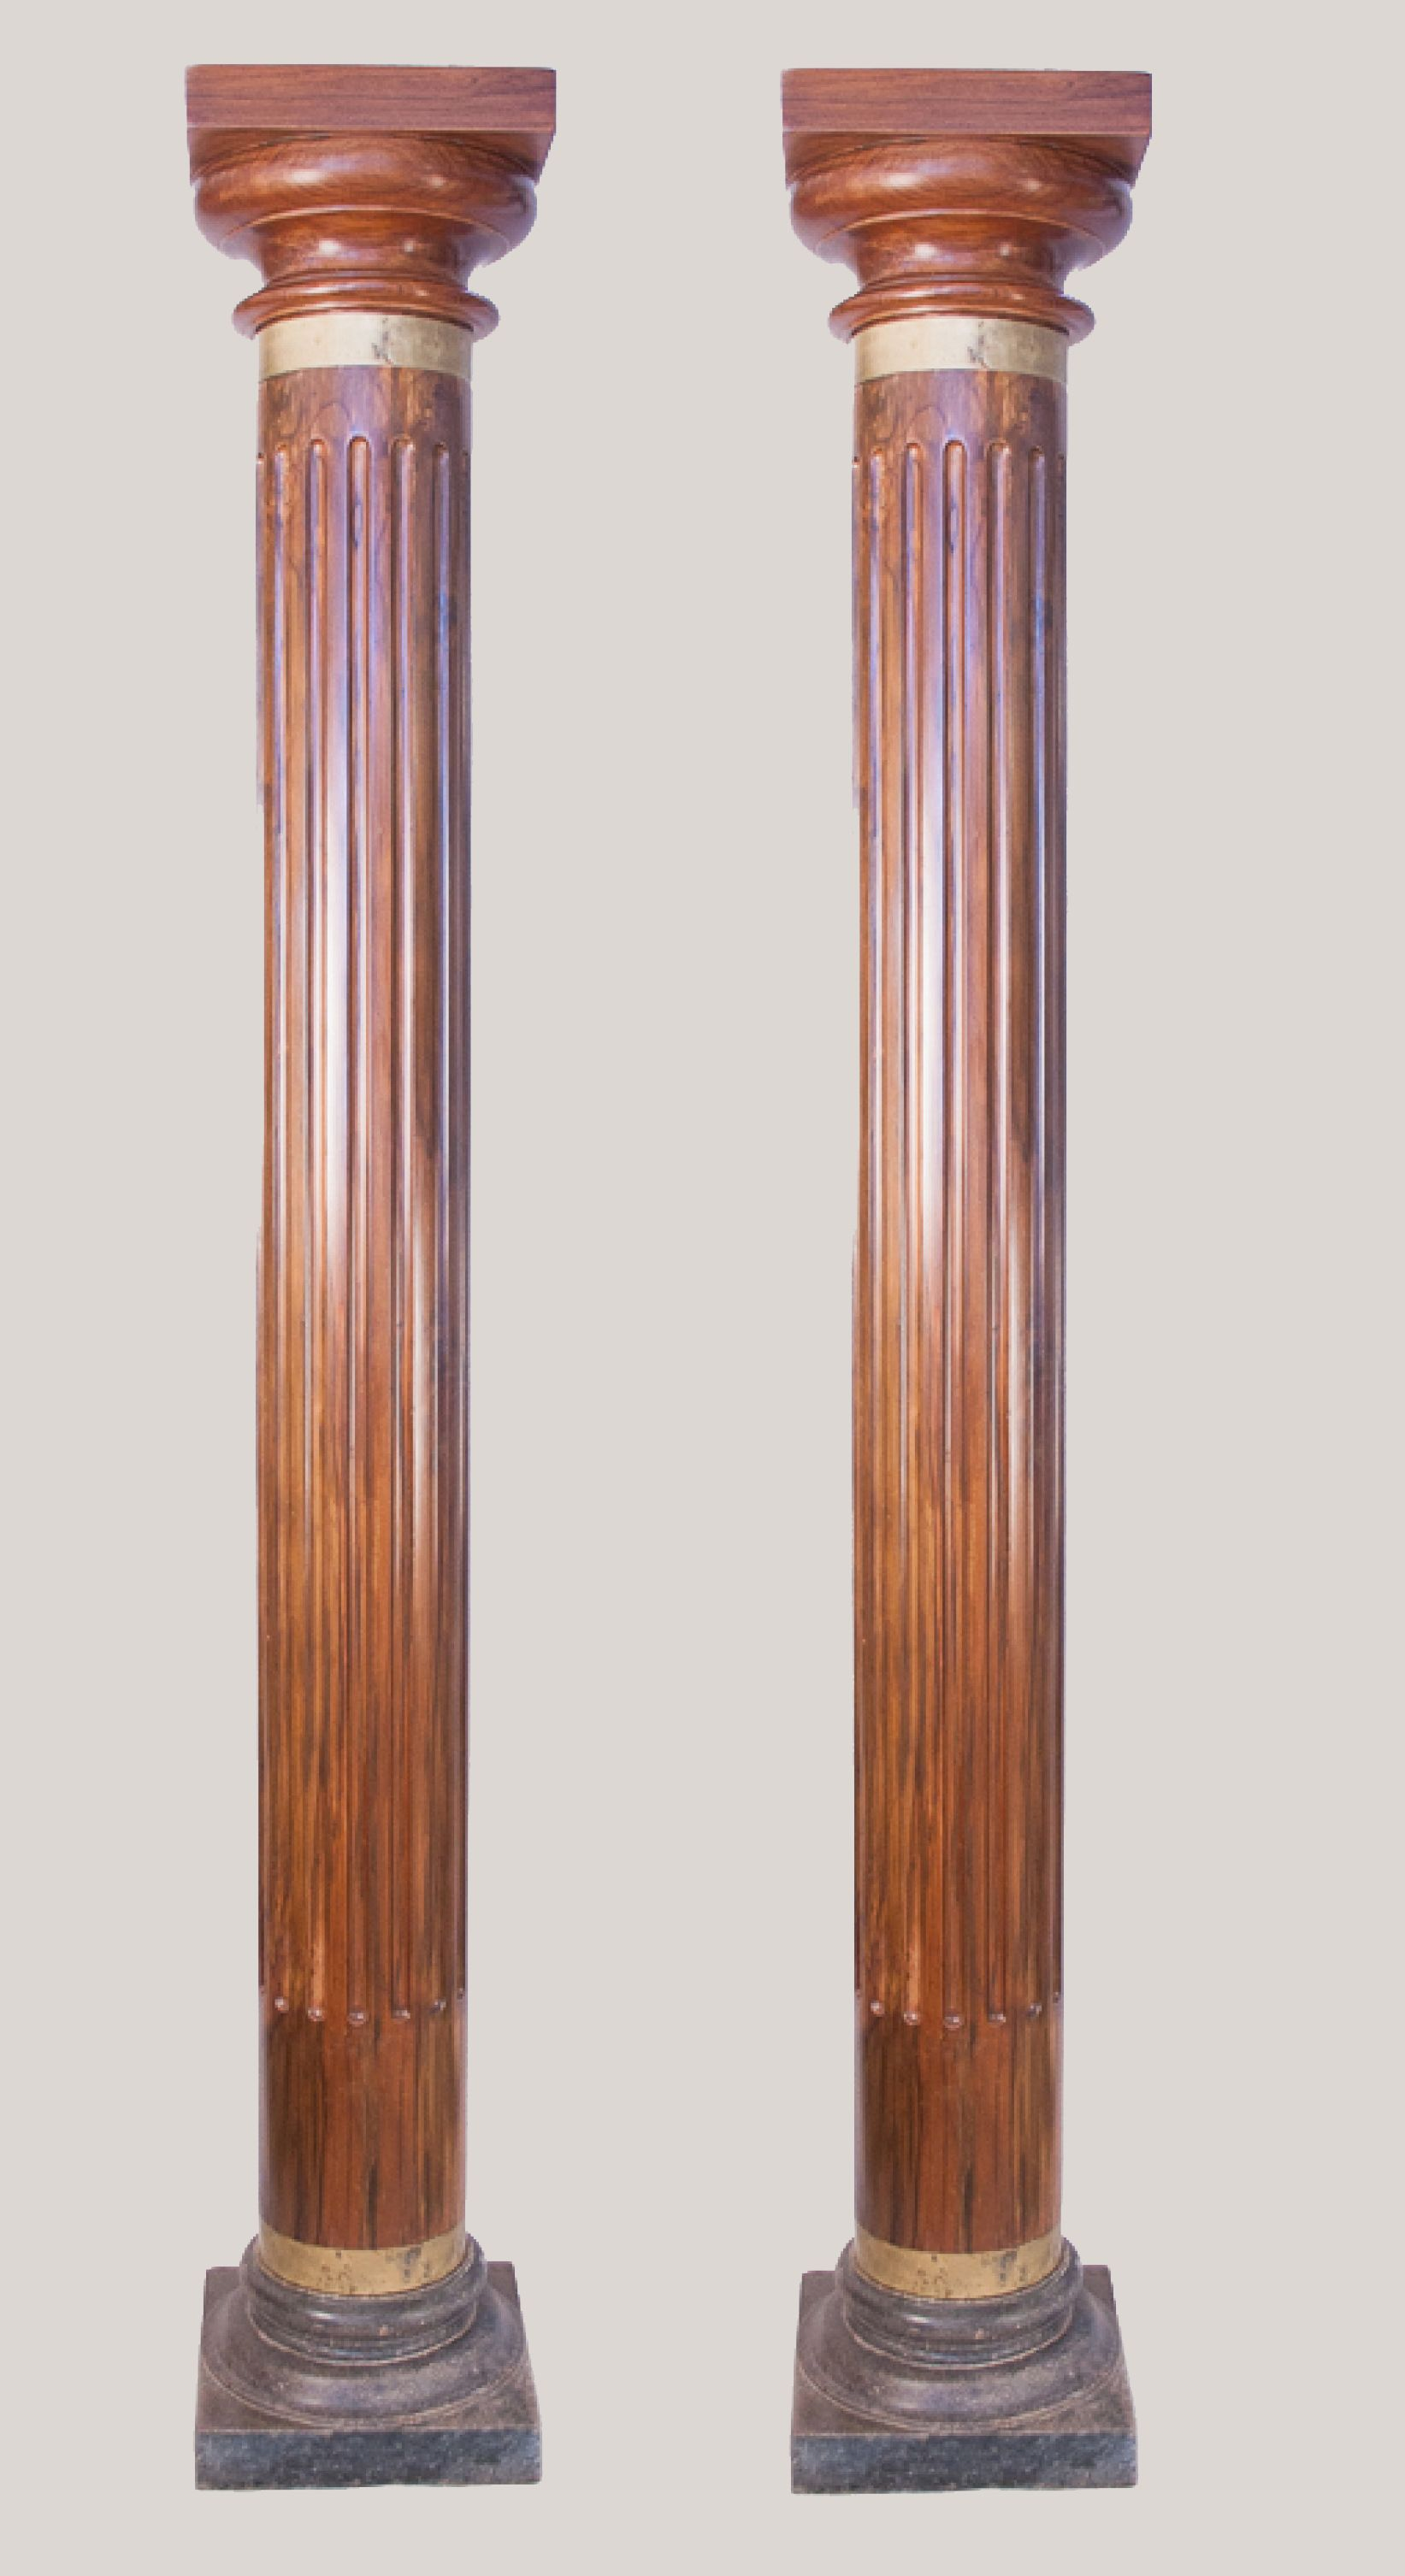 Architectural Columns Product : Antique wood reeded doric columns or pillars fair trade